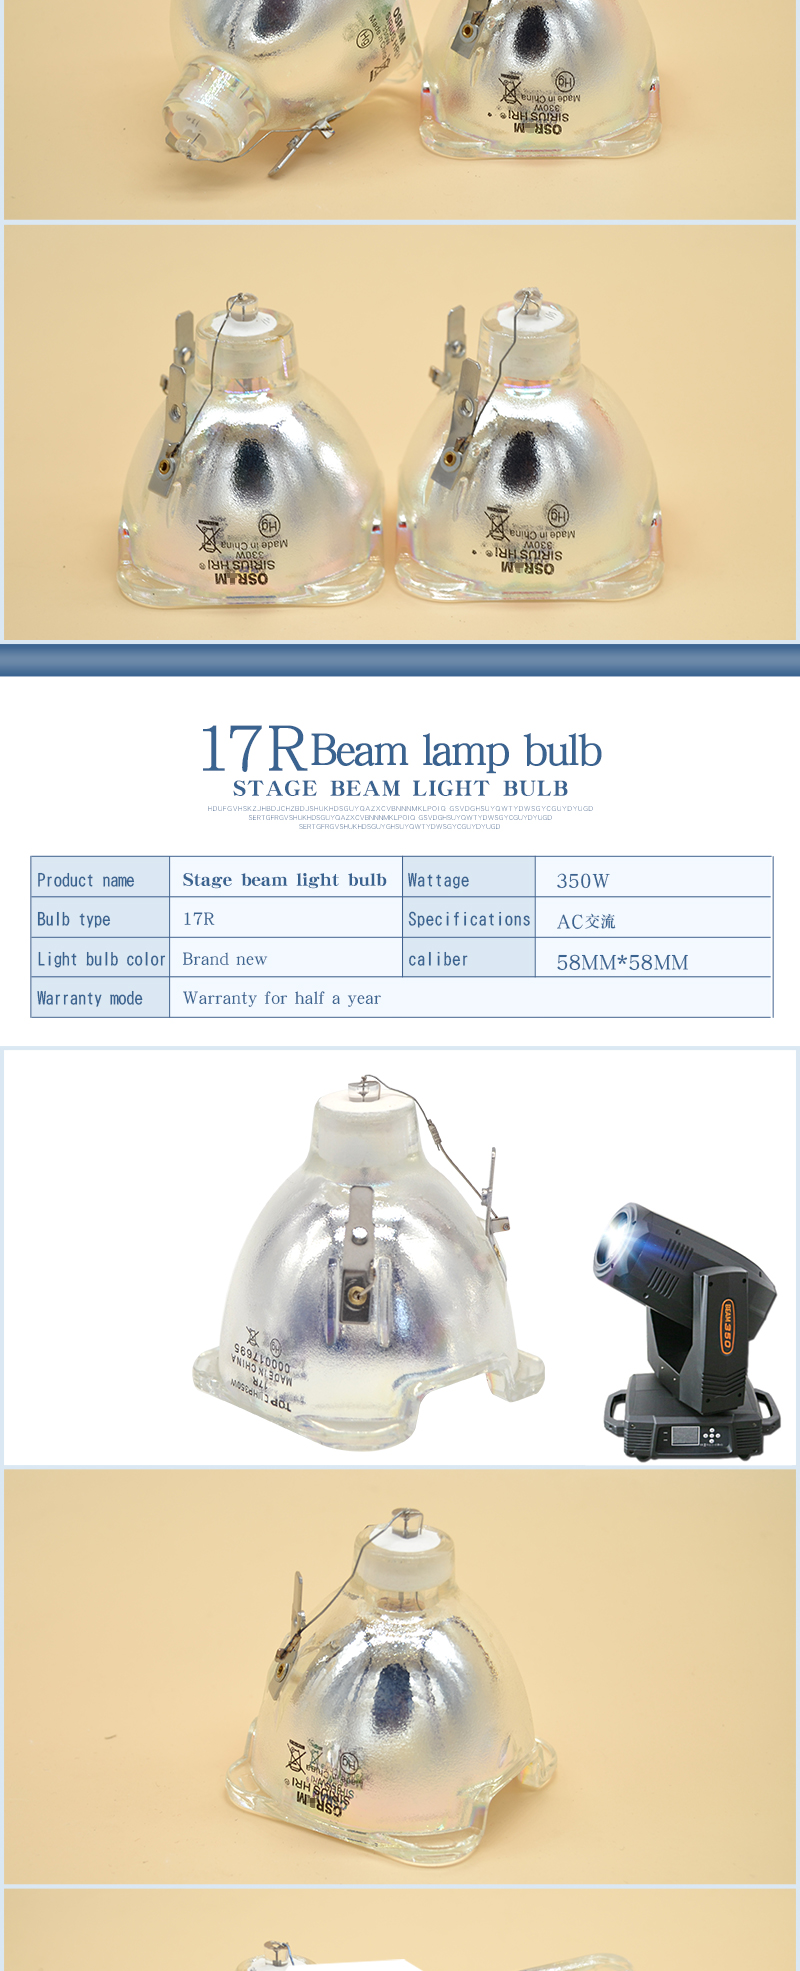 Hot Sales 7R 230W Metal Halide Lamp Moving beam lamp 230 beam 230 SIRIUS HRI230W For Osram Made In China Hot Sales 7R 230W Metal